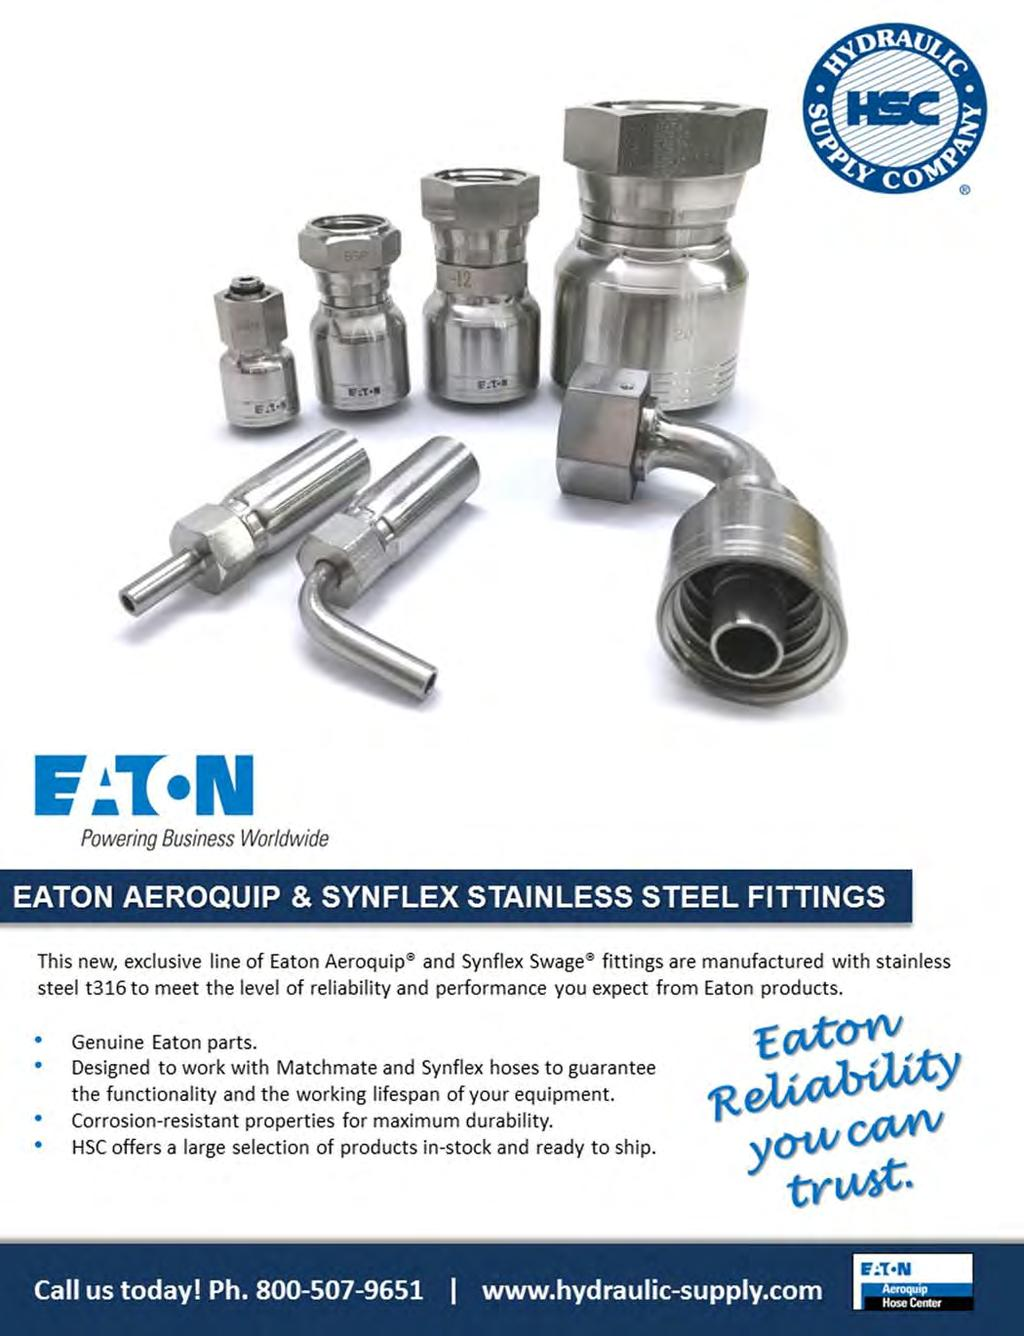 1//8 NPT Male 37 Degree JIC m m JIC 37 Degree /& NPT End Types Eaton Aeroquip 2021-2-3S Male Connector Pack of 10 End Size Male Pipe Thread Carbon Steel 3//16 Tube OD x 3//16 JIC